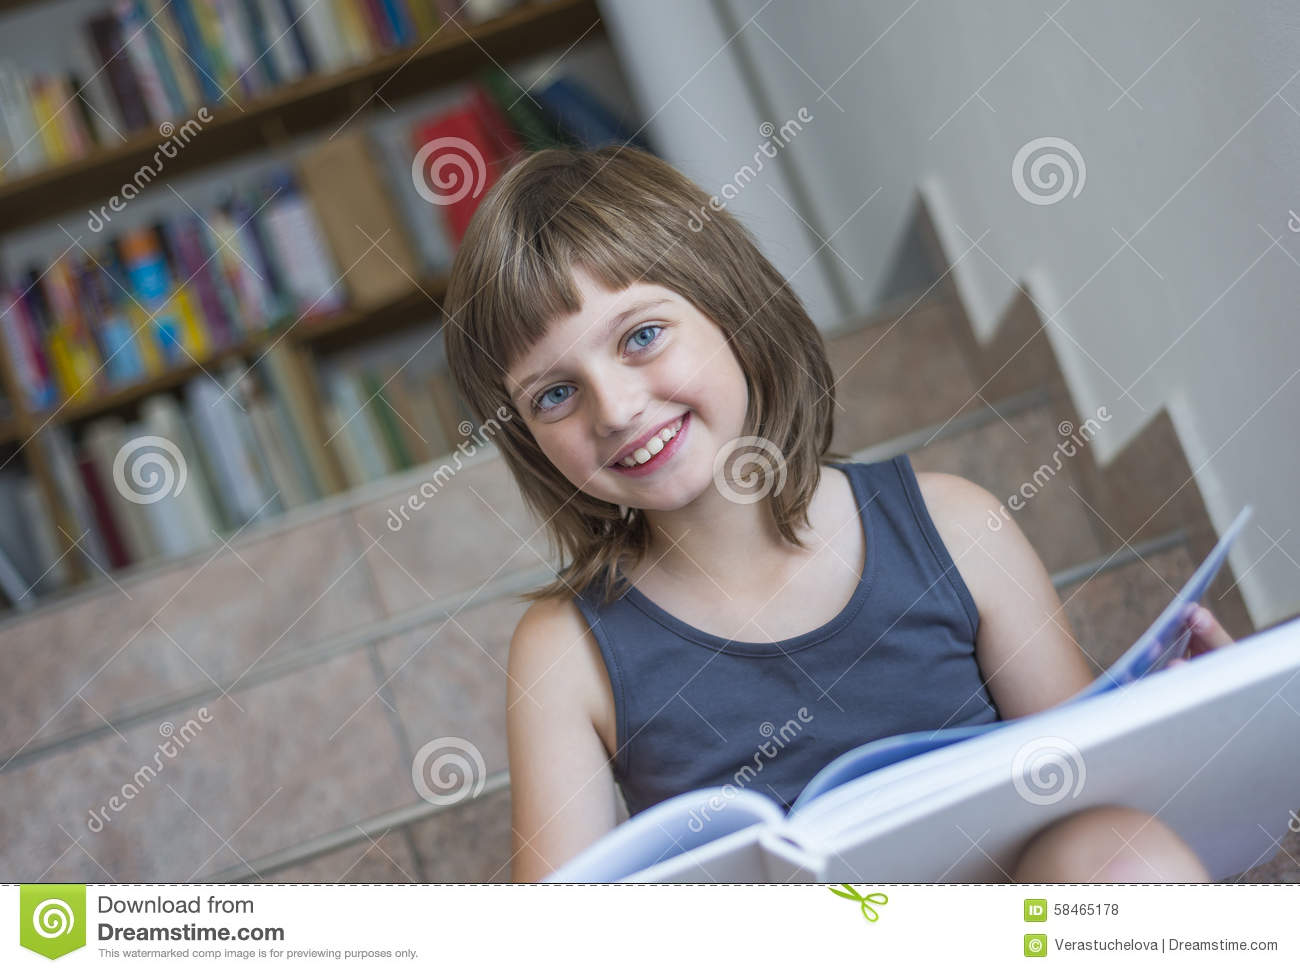 book report little woman Do a book report  you may read any one of the books on this list: no book title 1 daddy long legs 2 little women 3 frankenstein 4.